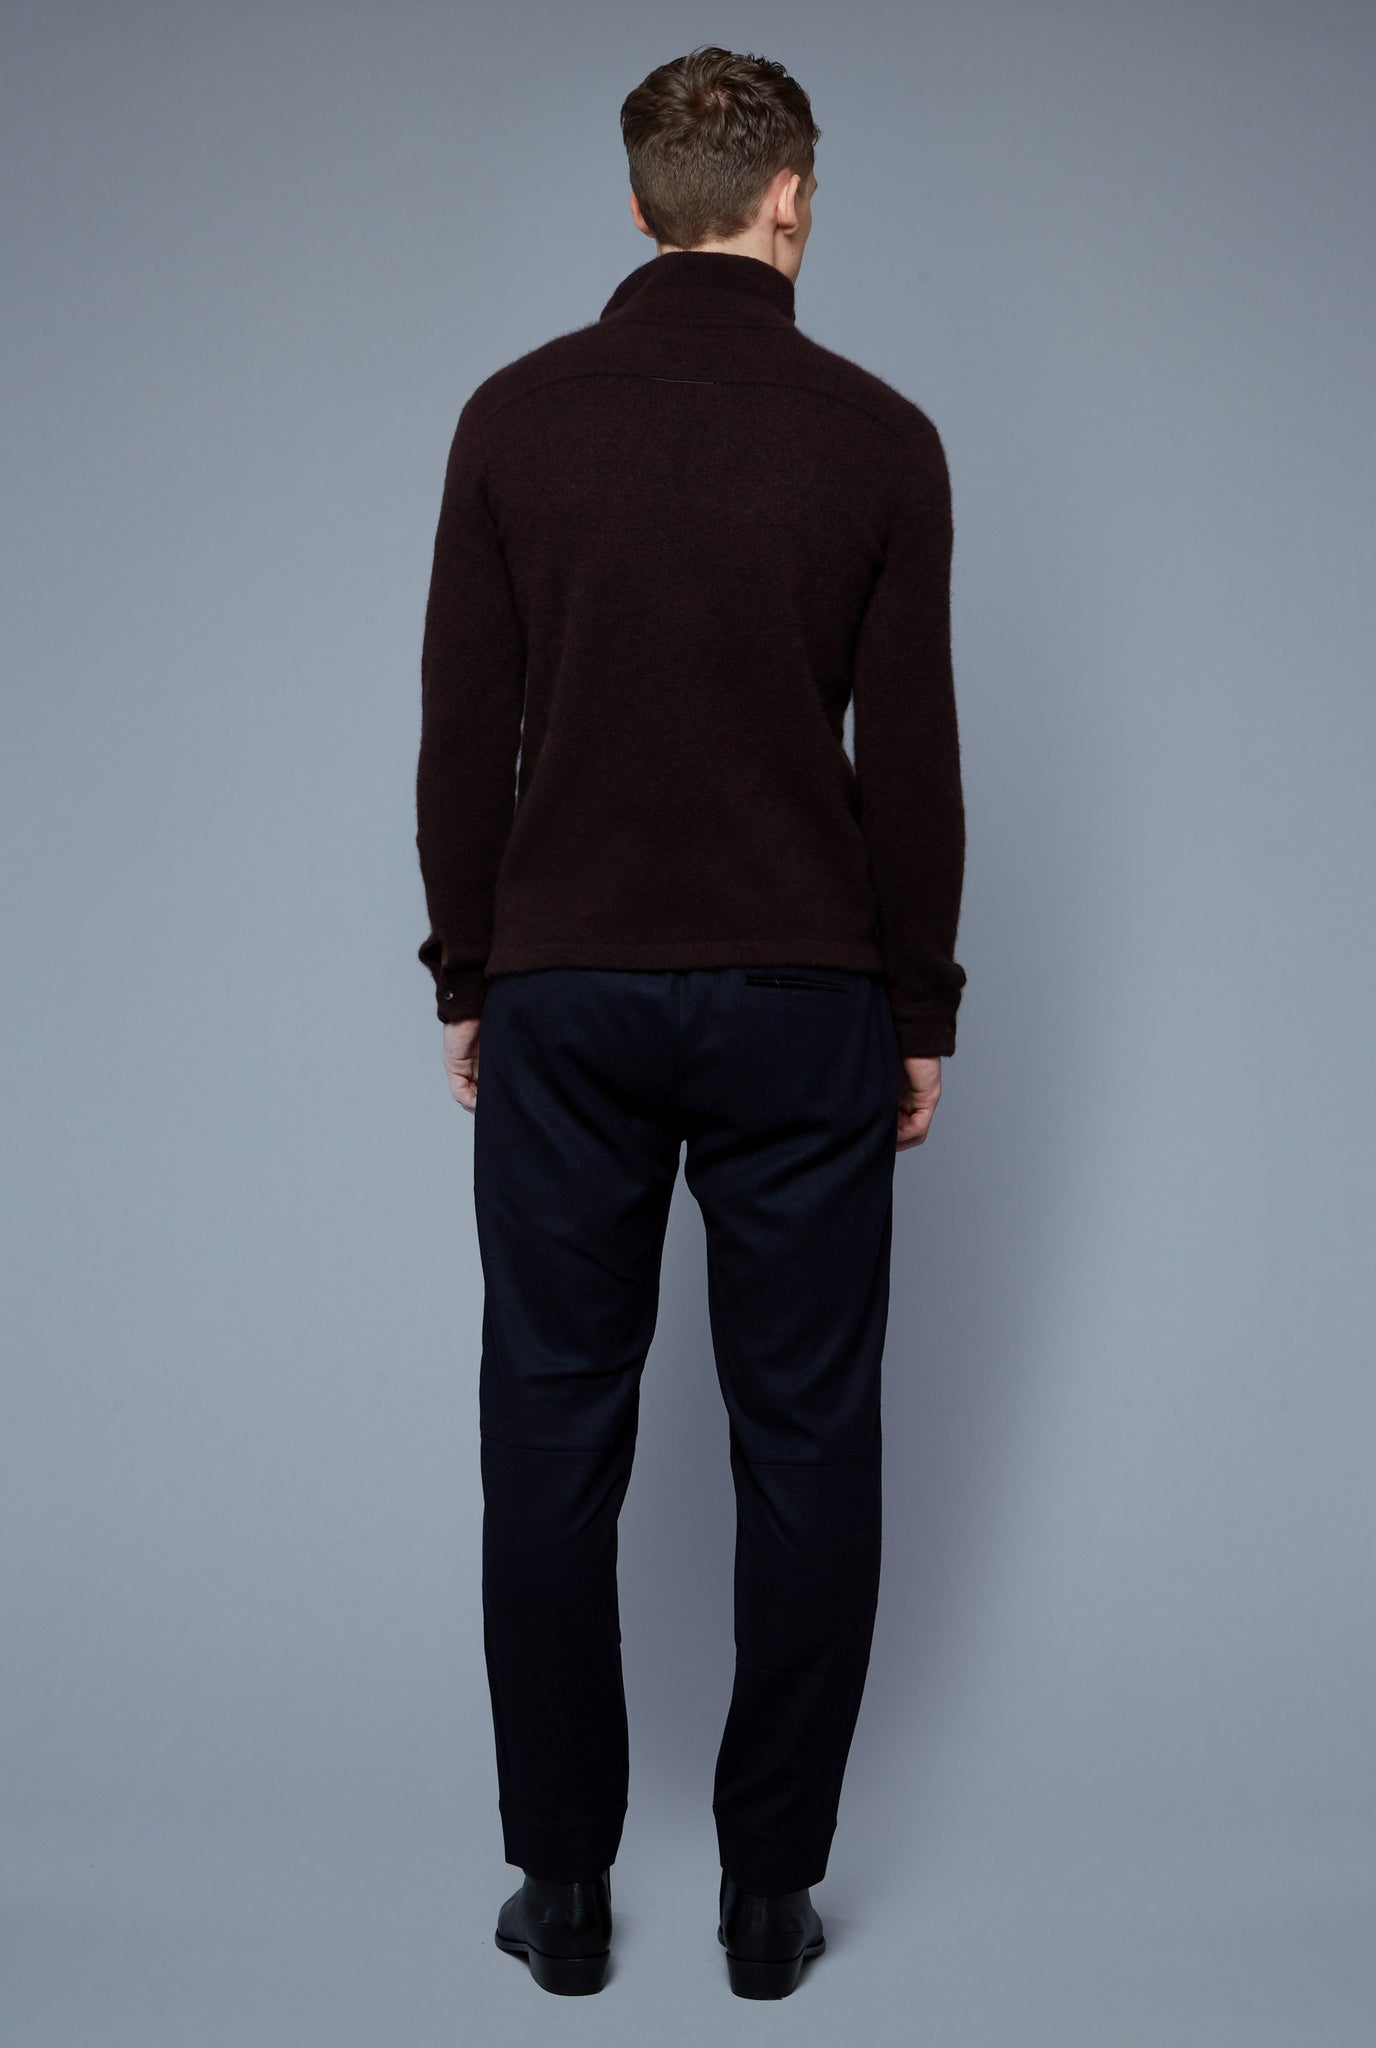 Back View: Model Milos Drago wearing Cashmere Boucle Sweater